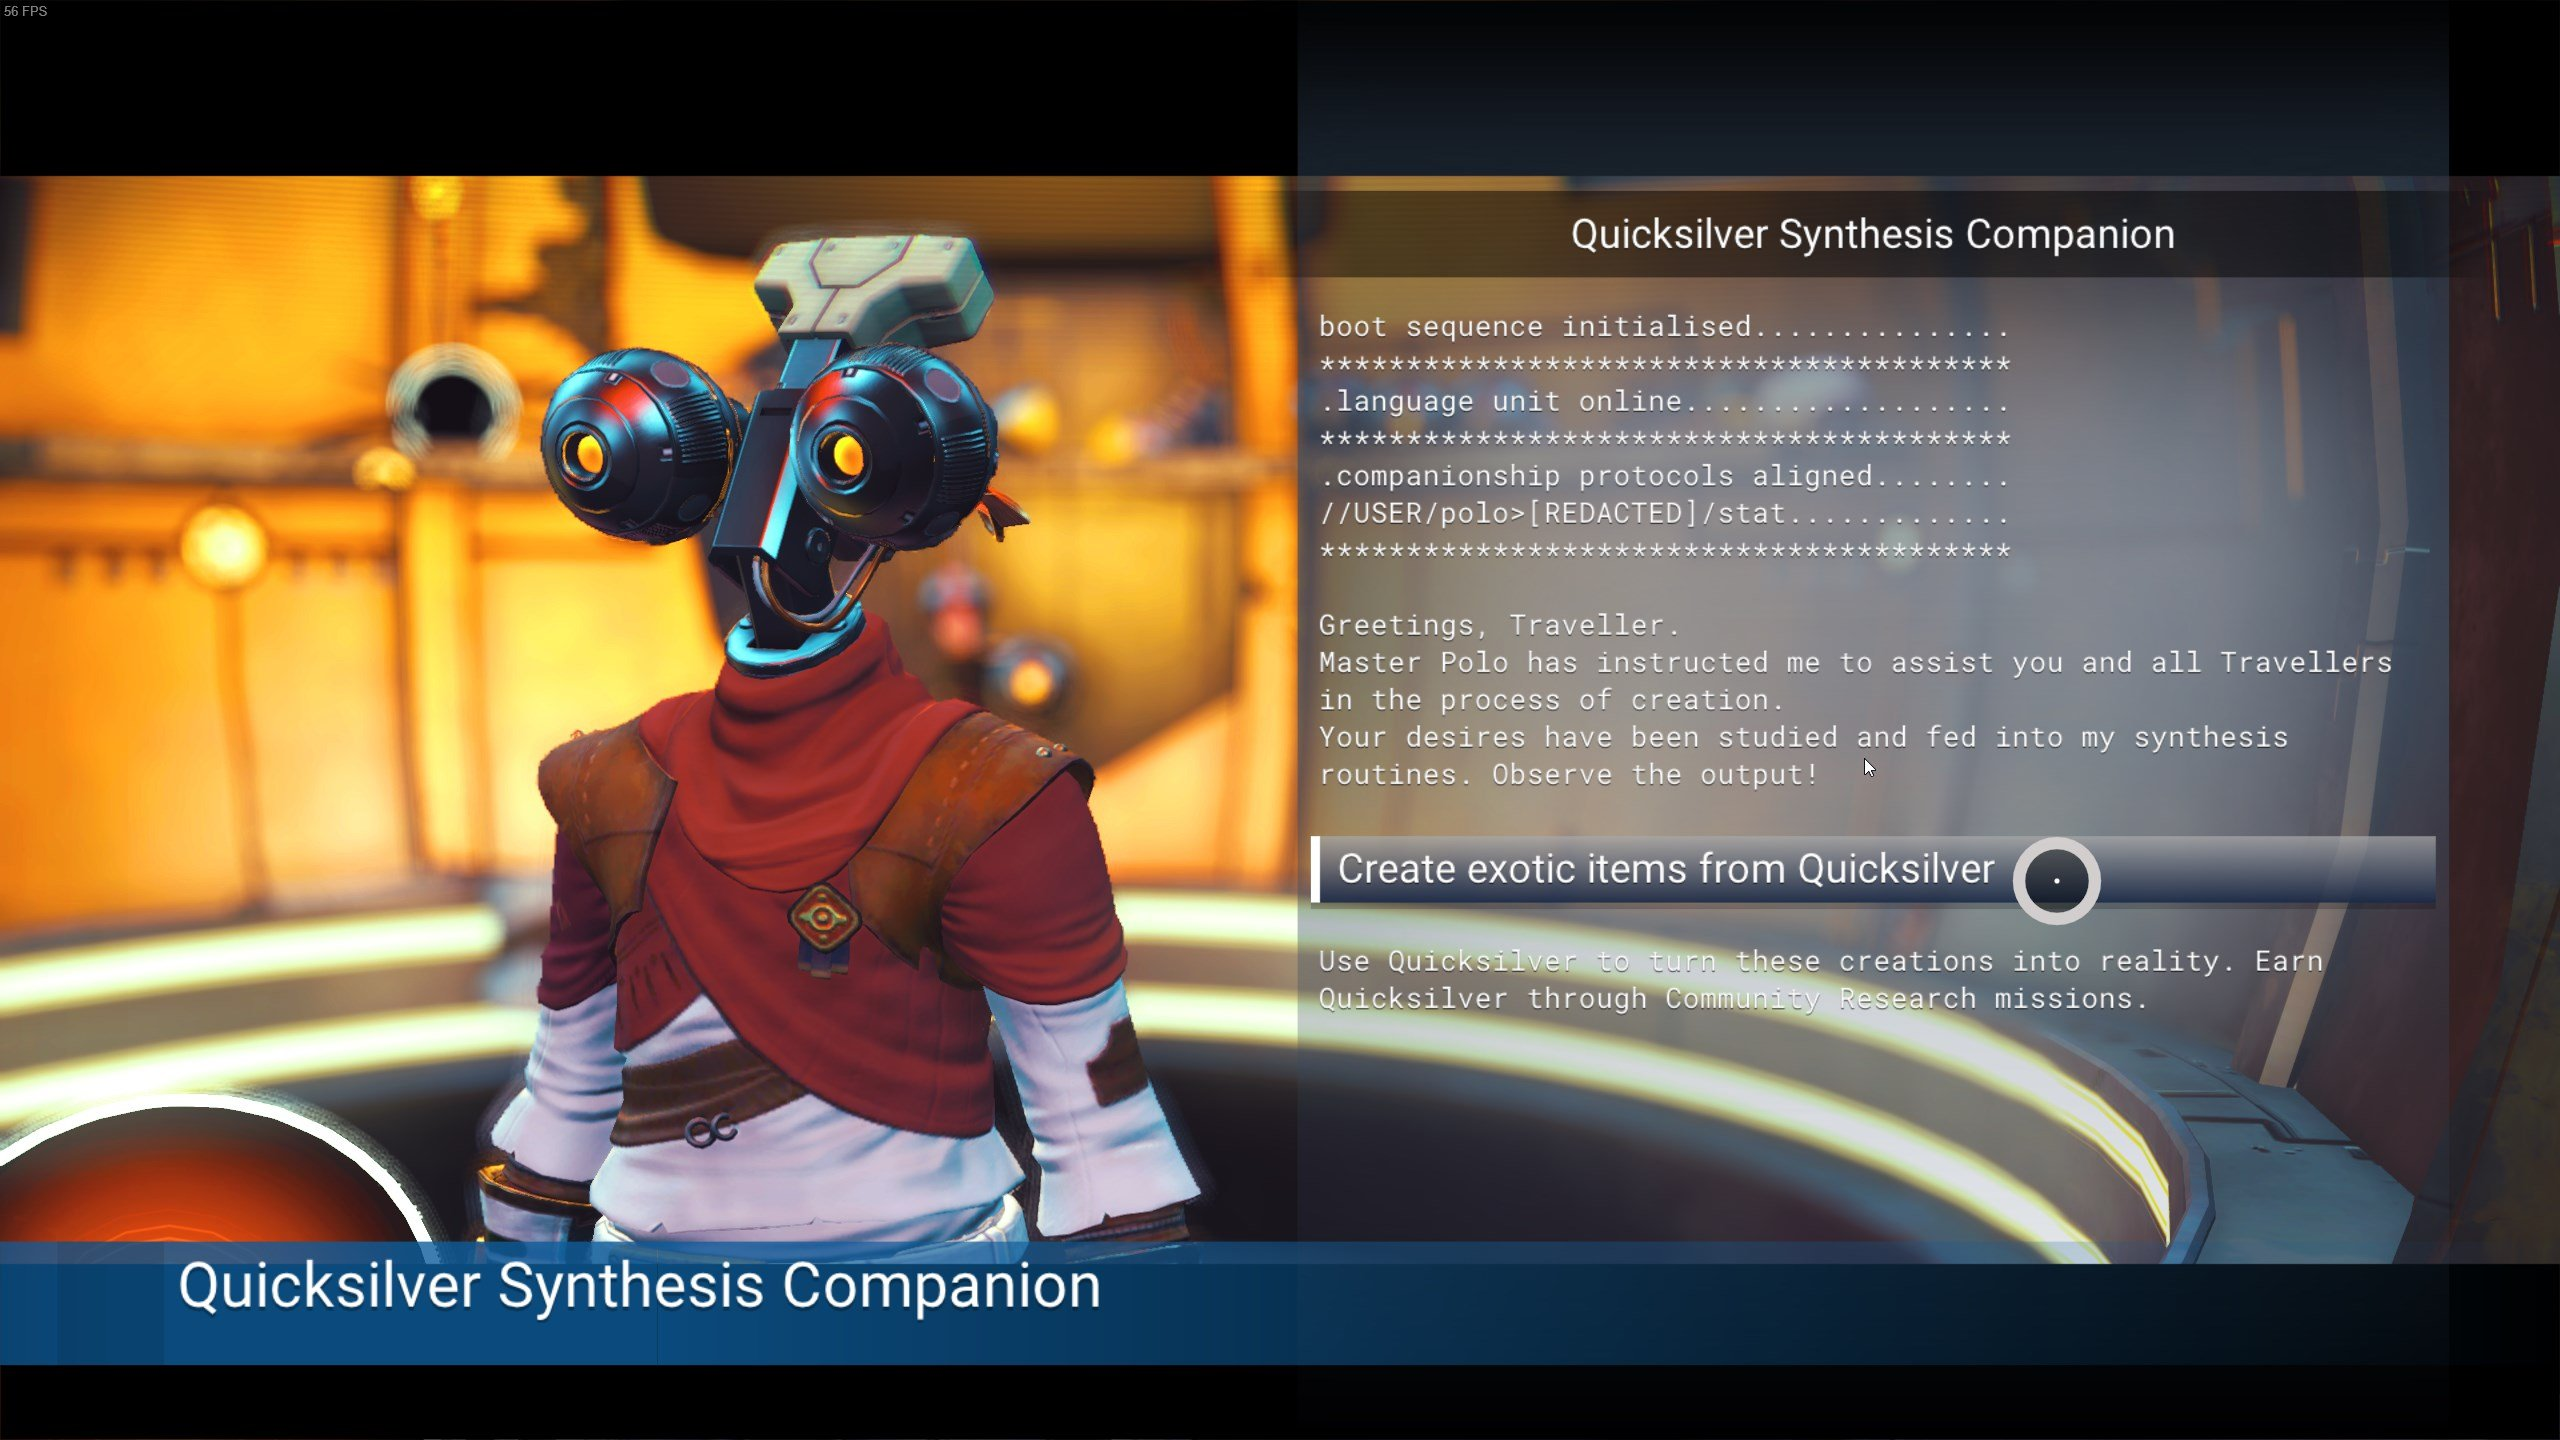 how to make Quicksilver in No Man's Sky